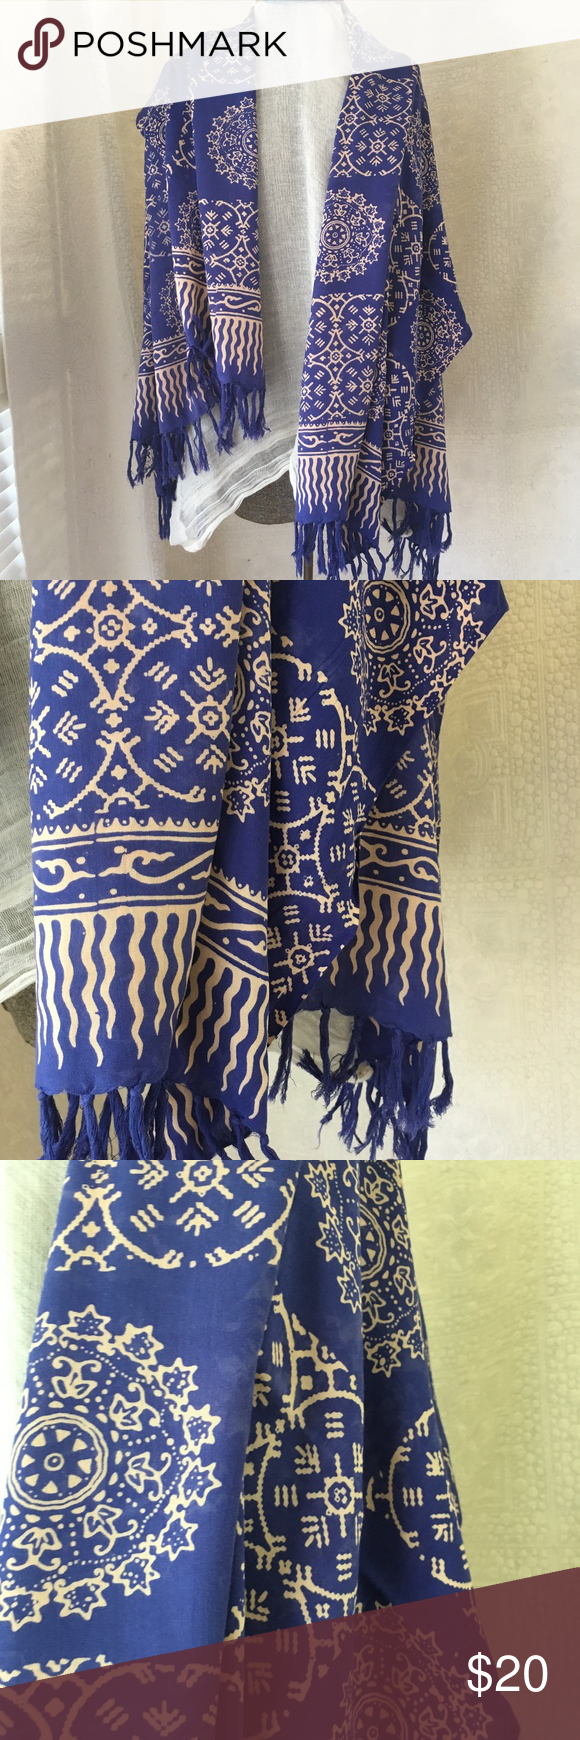 Rayon Batik Shawl Scarf Blue Peach Oversized I love Batik Shawls!  The prints are so gorgeous. This one is no exception!  Measures 46 x 62 inches  Periwinkle blue with soft pink/peach/blush Accessories Scarves & Wraps